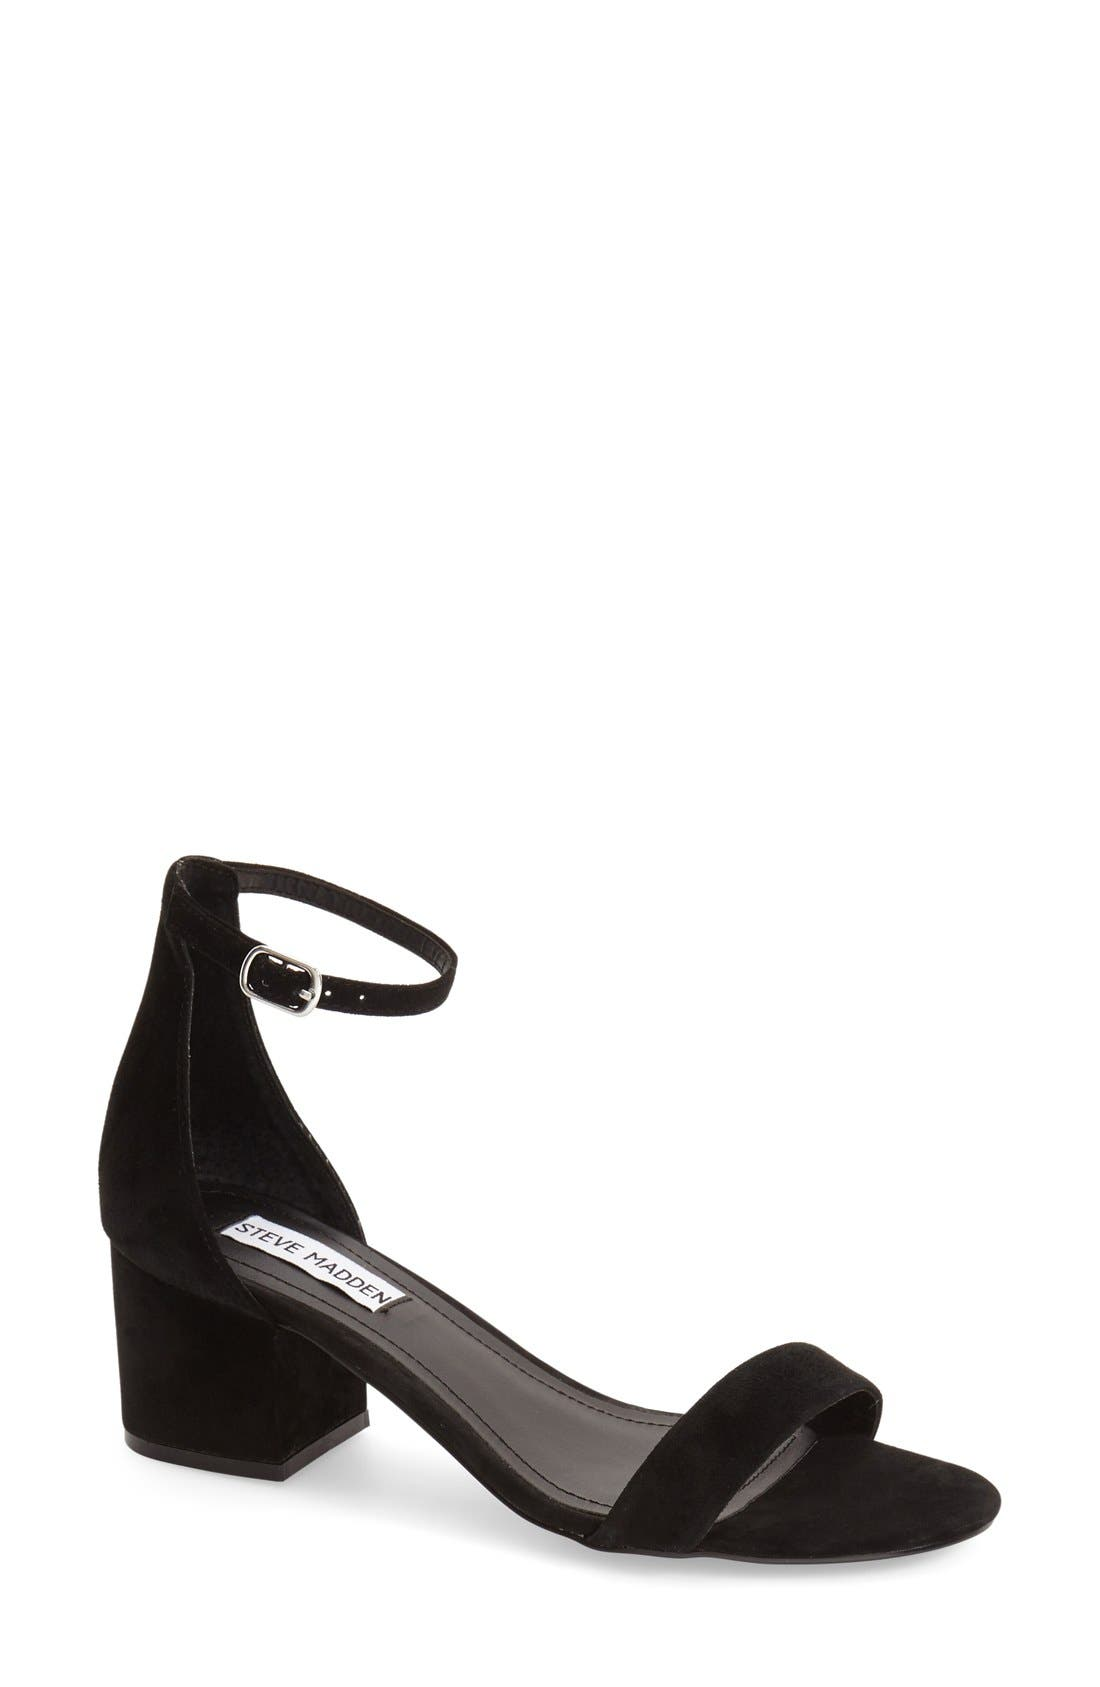 Irenee Ankle Strap Sandal,                         Main,                         color, BLACK SUEDE